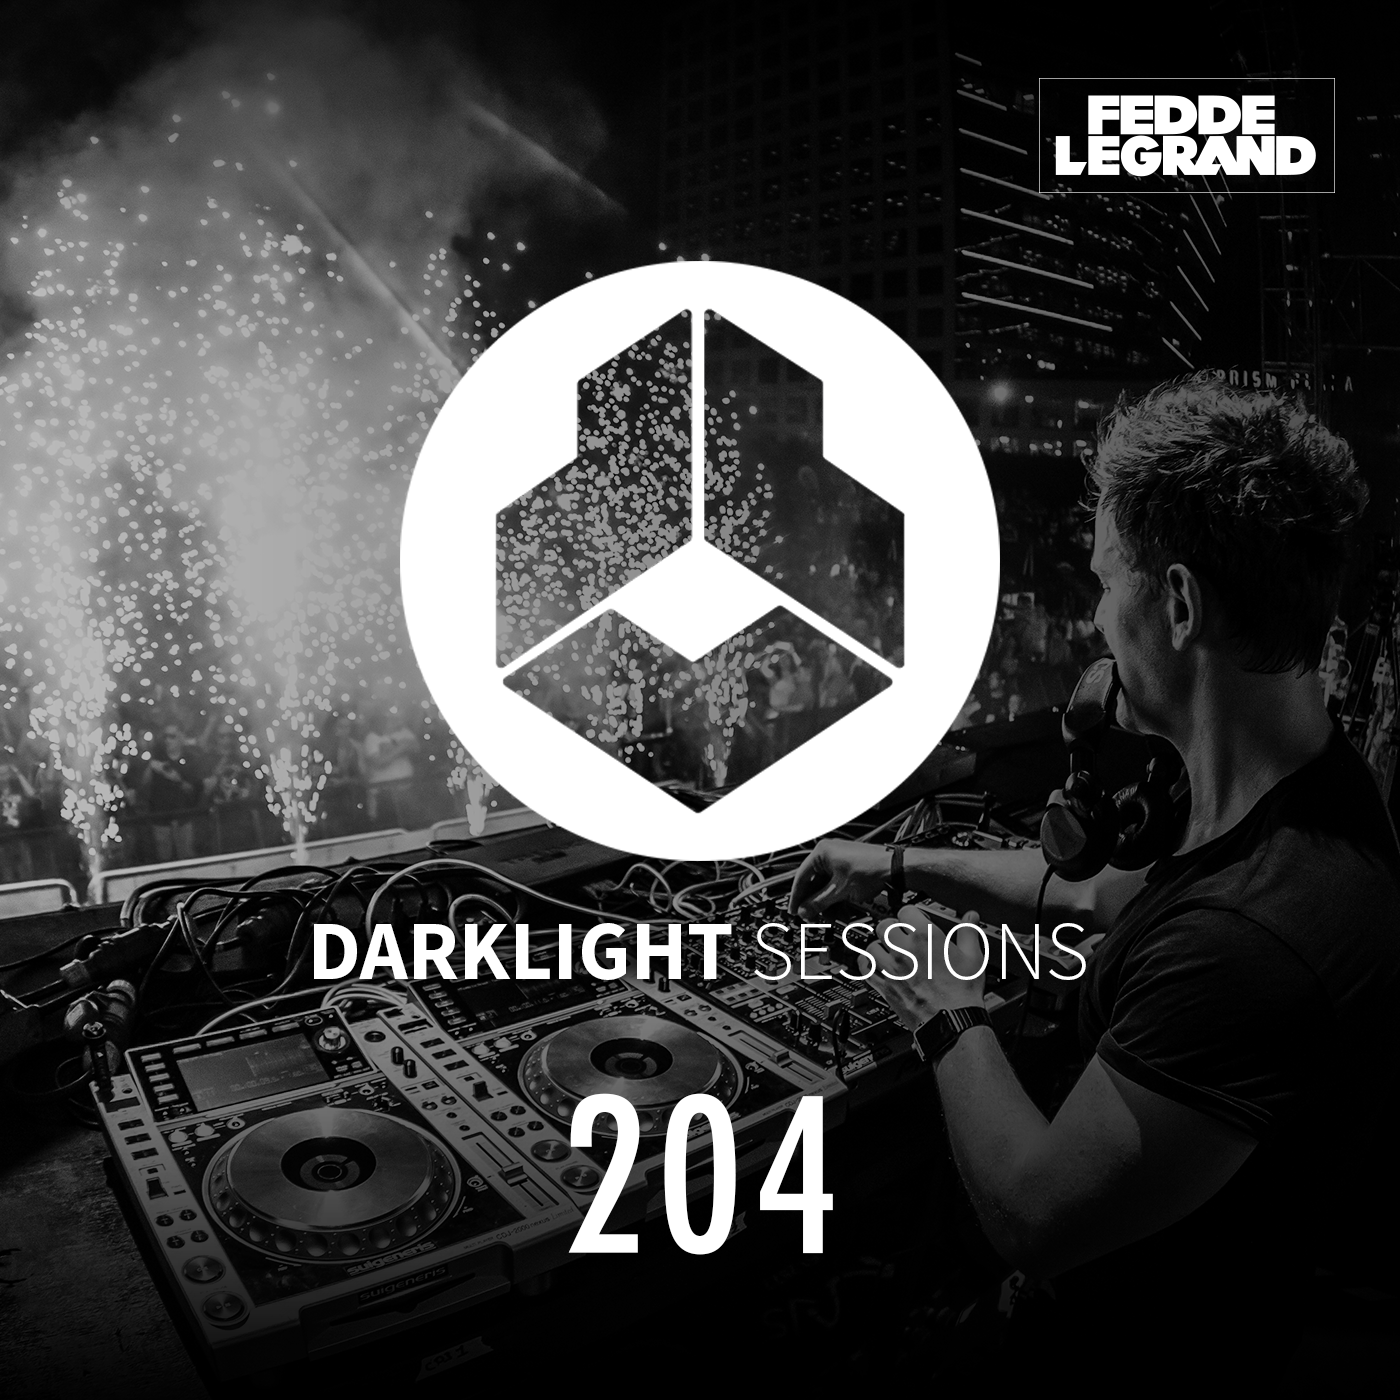 Darklight Sessions 204